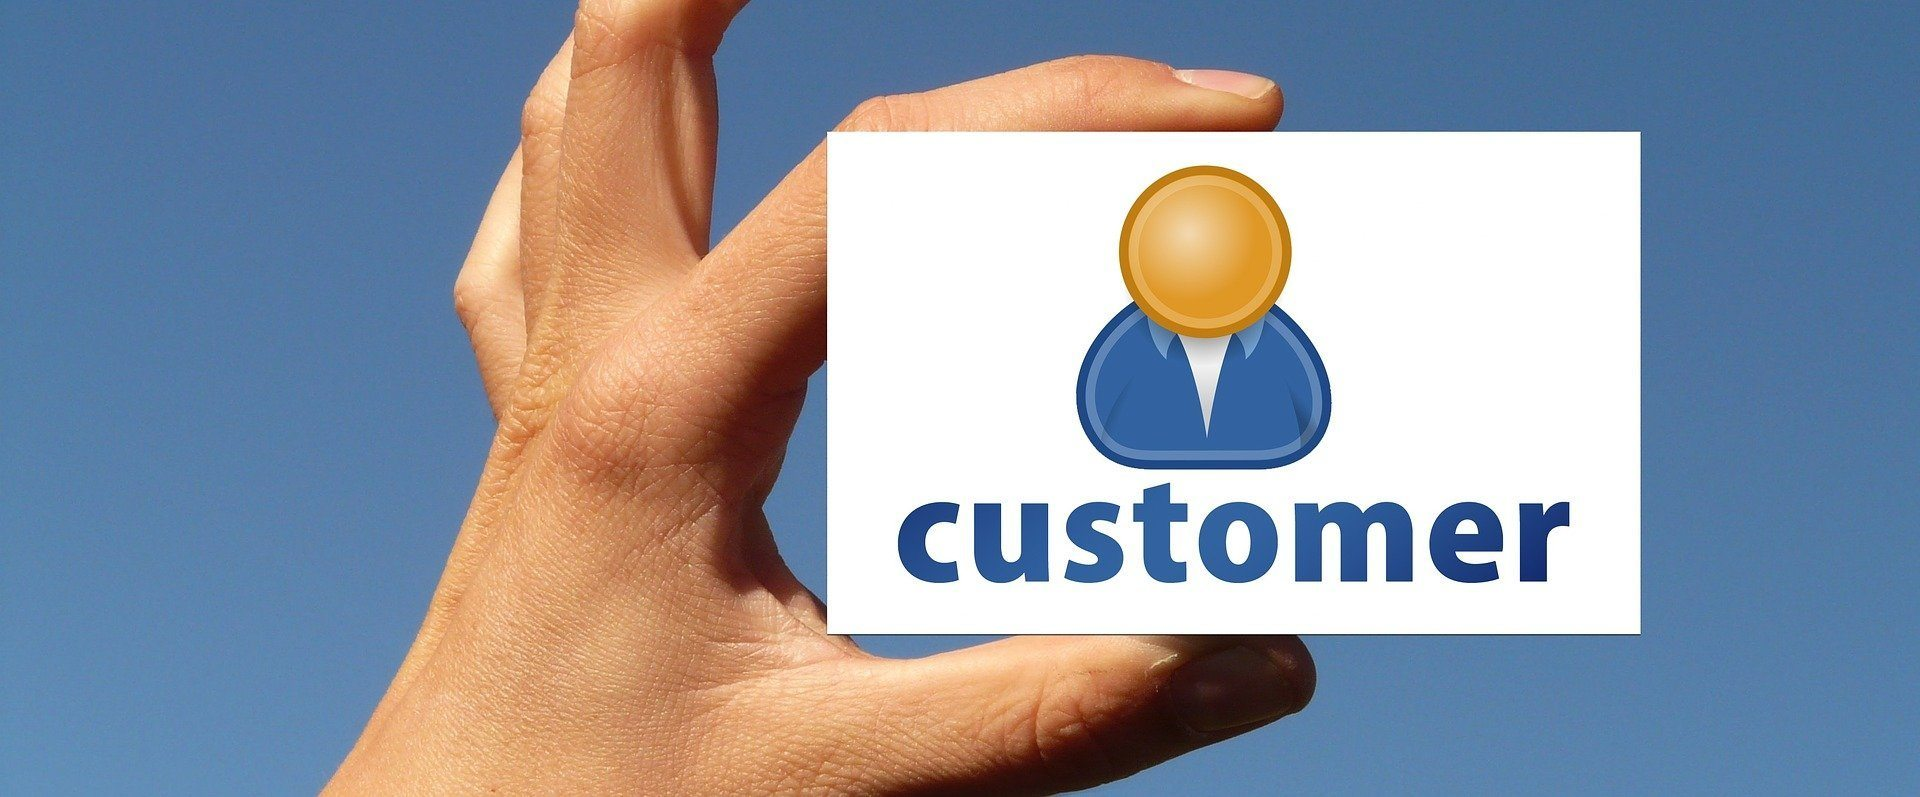 customer avatar - How to Create a Customer Avatar or Persona